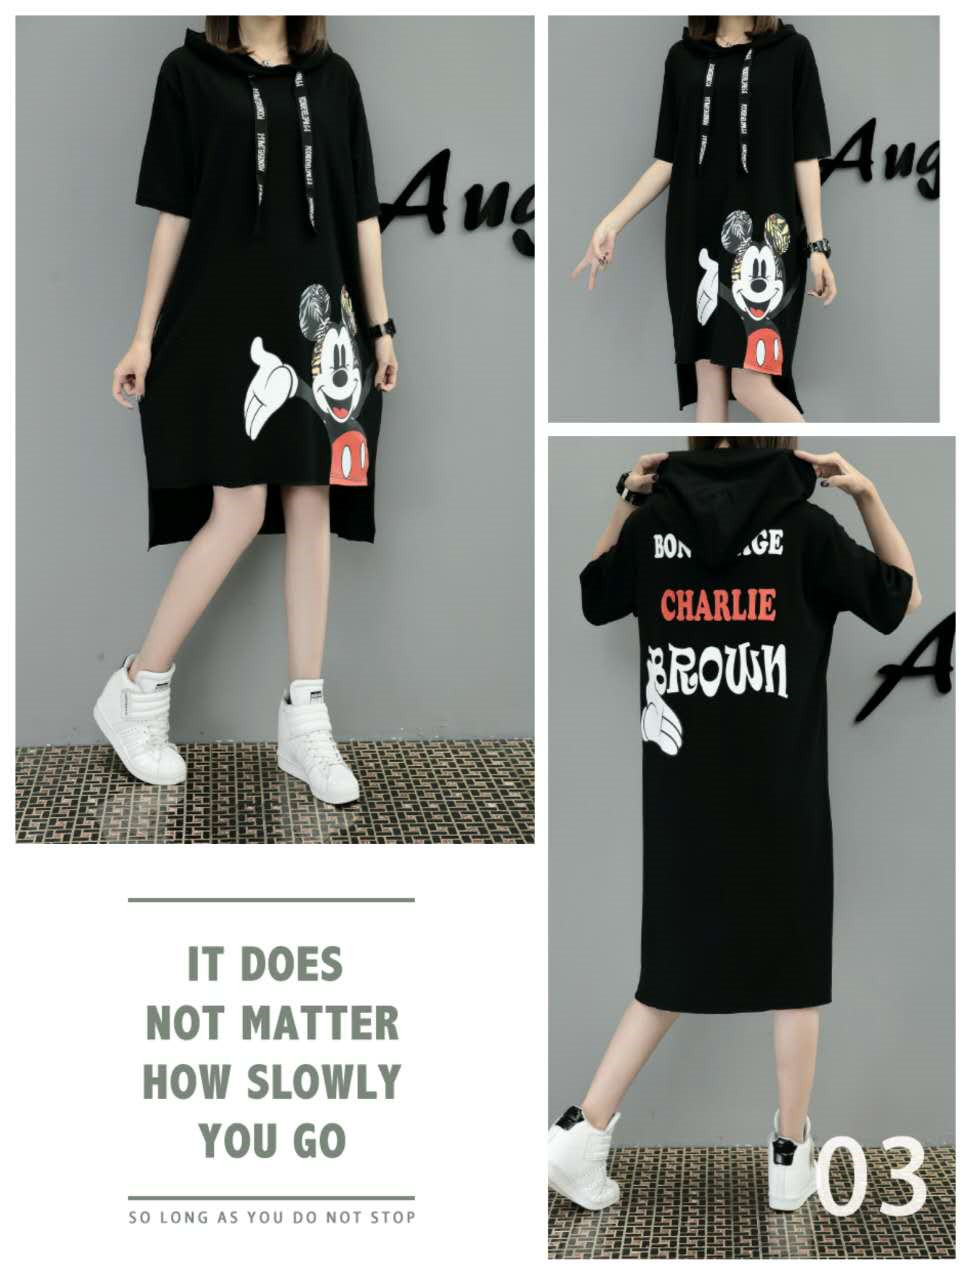 Hd096625937d144cdbcce70b7bd3d45abB - New Runway short sleeve Hooded Sweatshirt dress casual mickey cartoon printed women femme oversize dresses vestidos